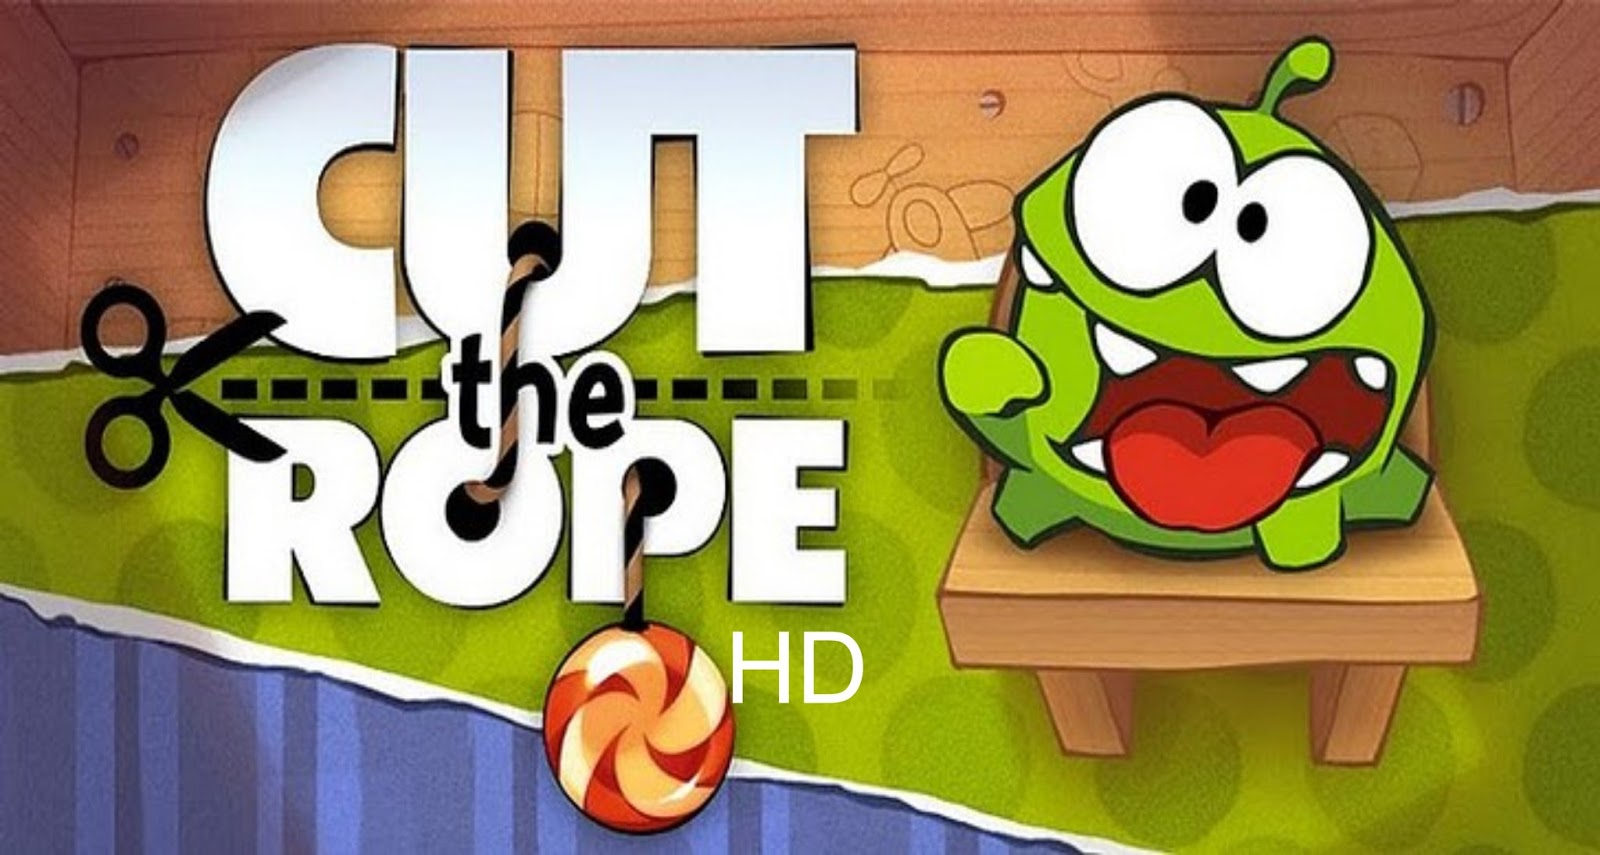 Cut the Rope HD v2.3.2 APK  Android Games Download